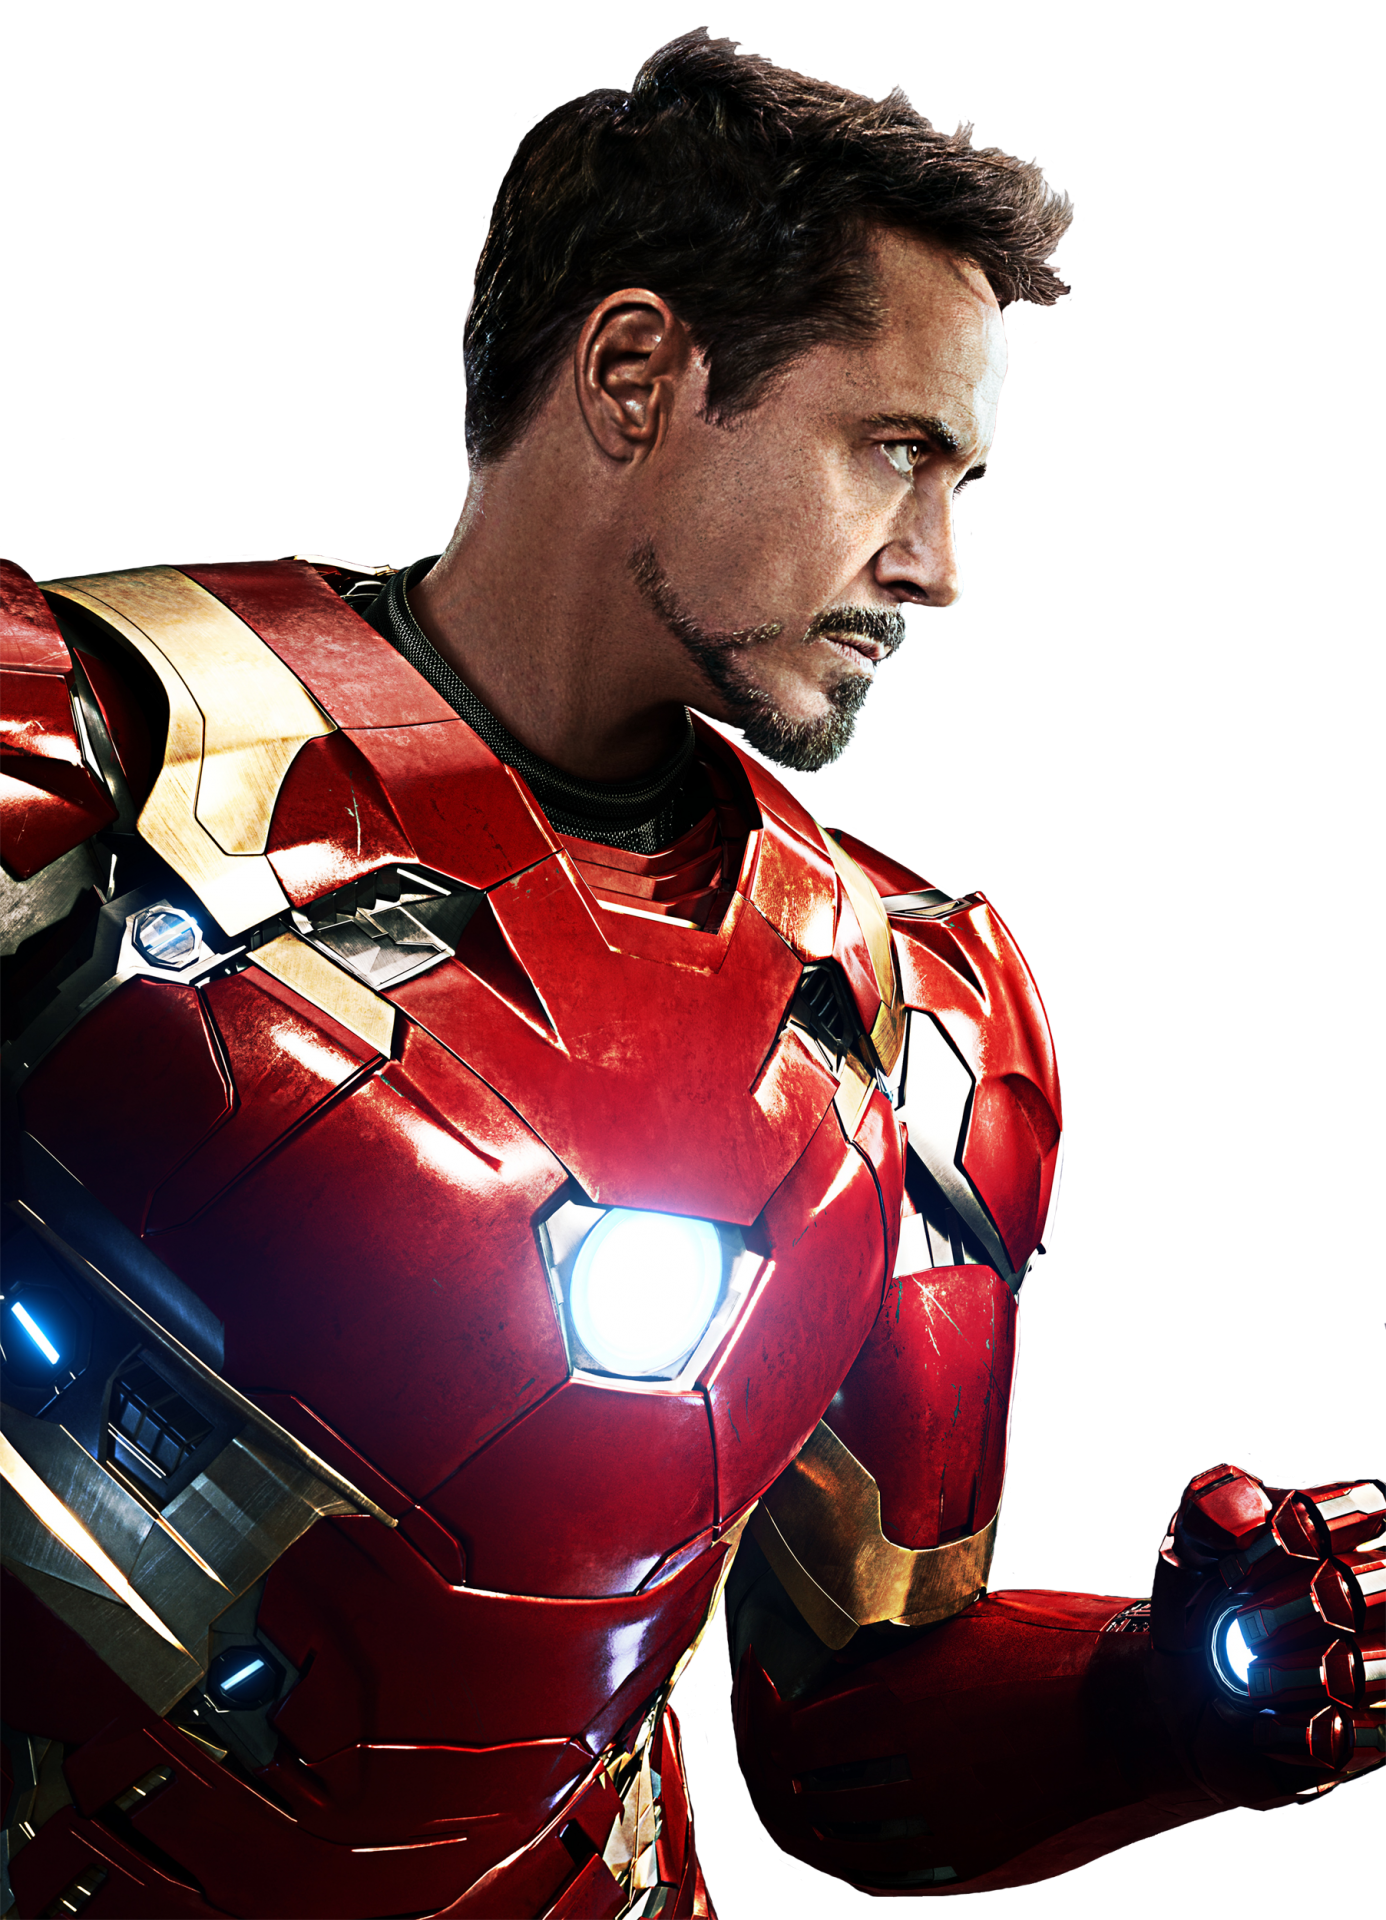 Cacw tony textless poster